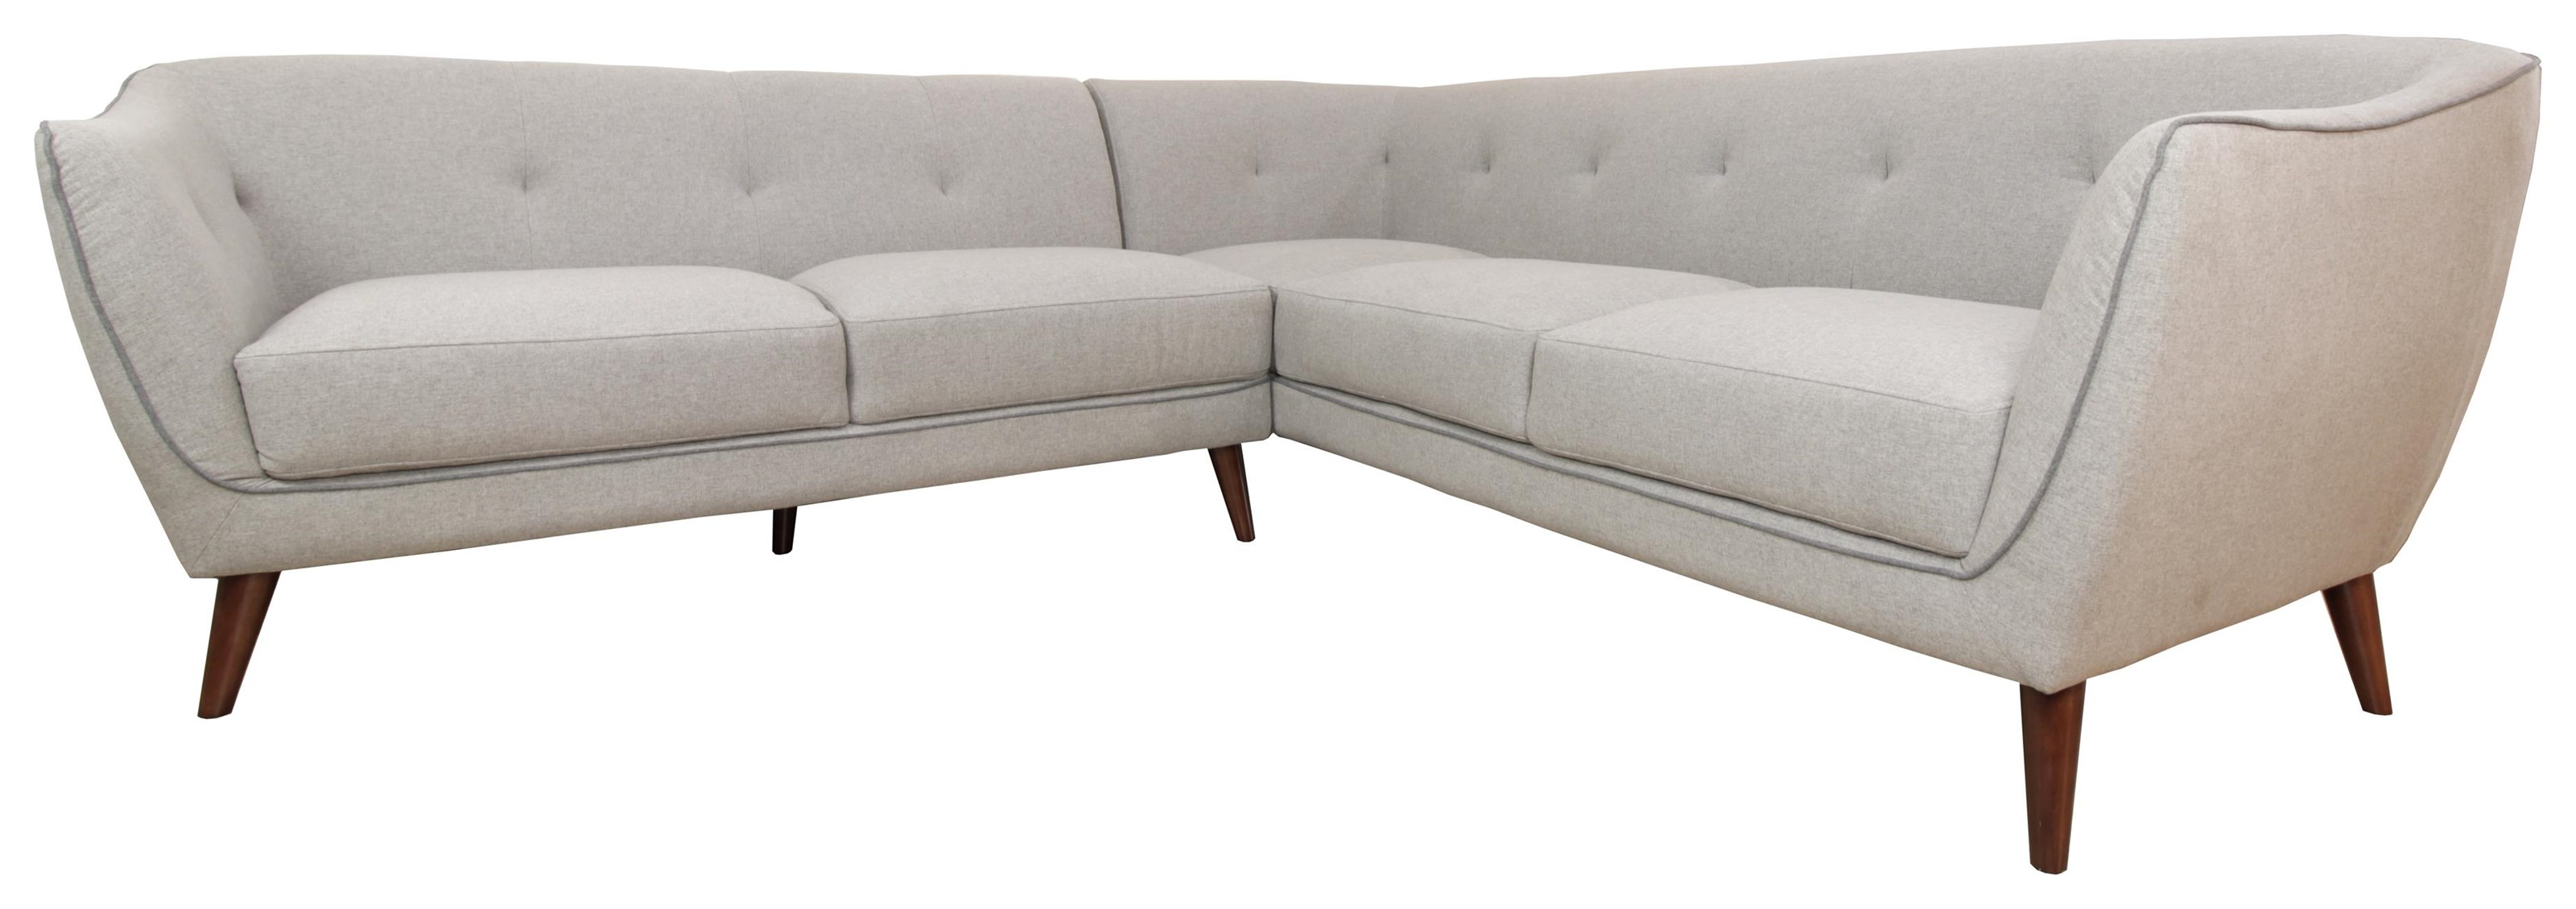 Urban Chic Sunday 123435050 Mid Century Modern Sectional Sofa Beck S Furniture Sectional Sofas